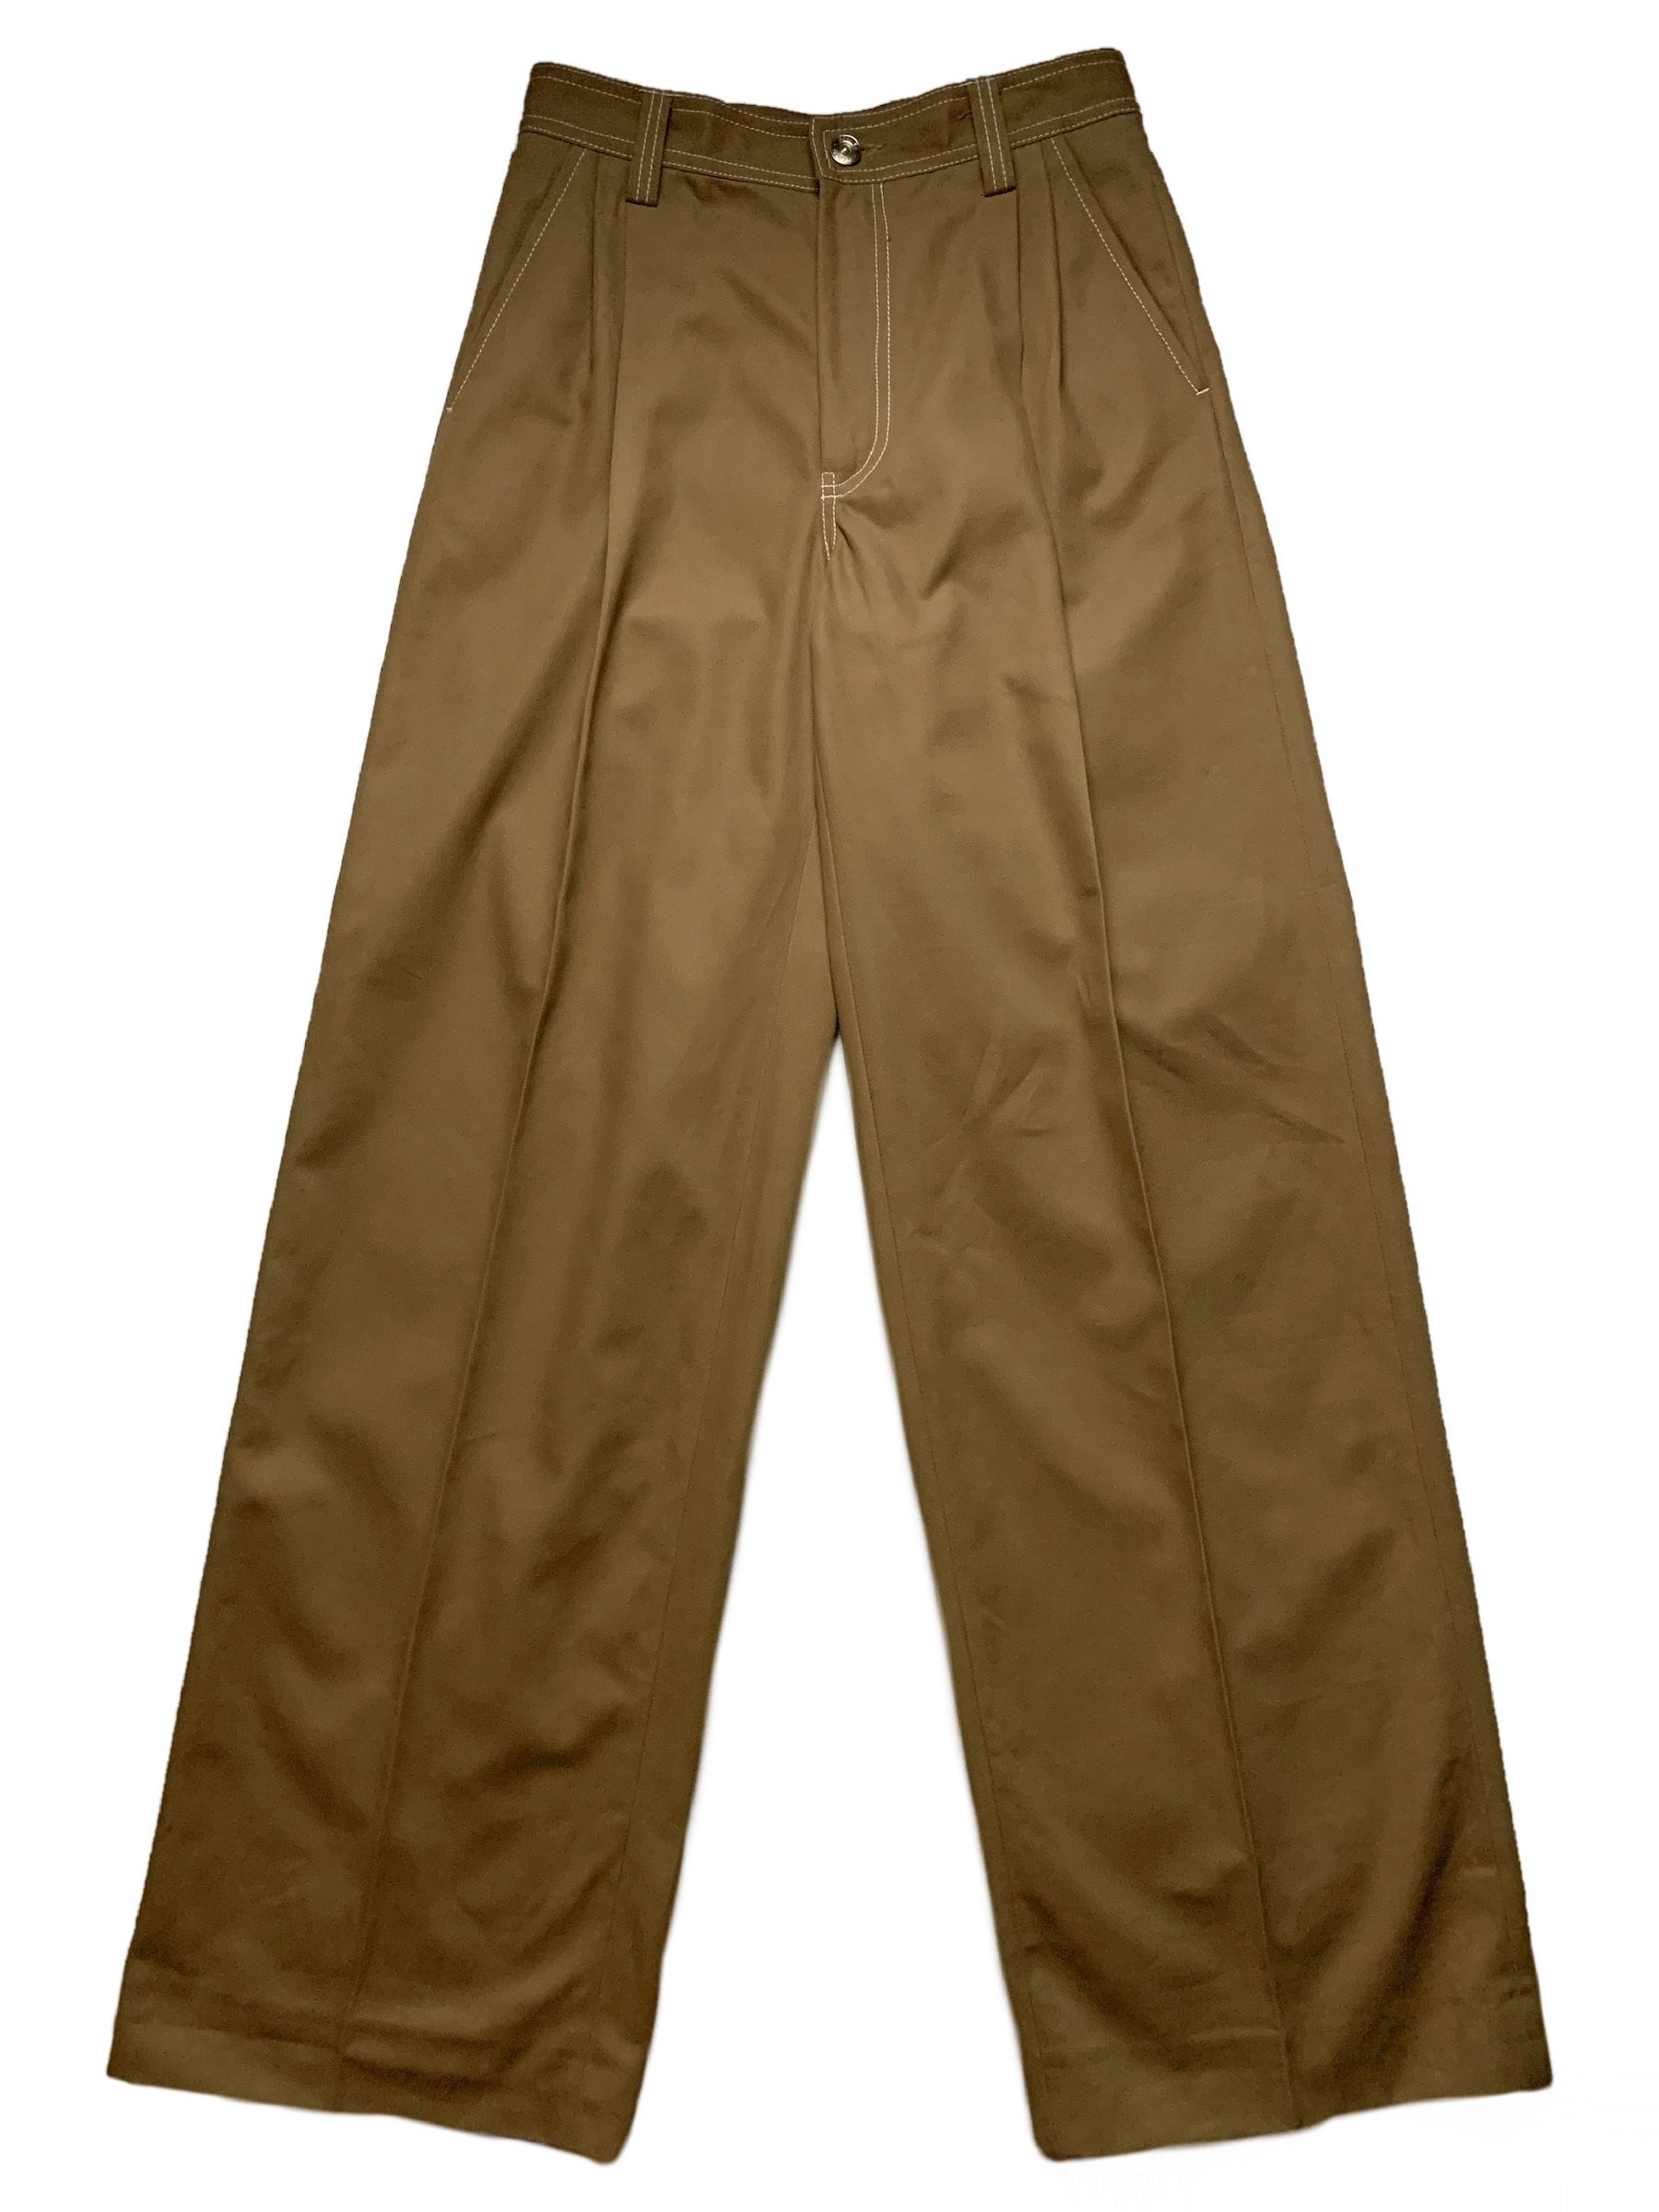 LONDON SINGLE PLEAT TROUSERS<img class='new_mark_img2' src='https://img.shop-pro.jp/img/new/icons46.gif' style='border:none;display:inline;margin:0px;padding:0px;width:auto;' />